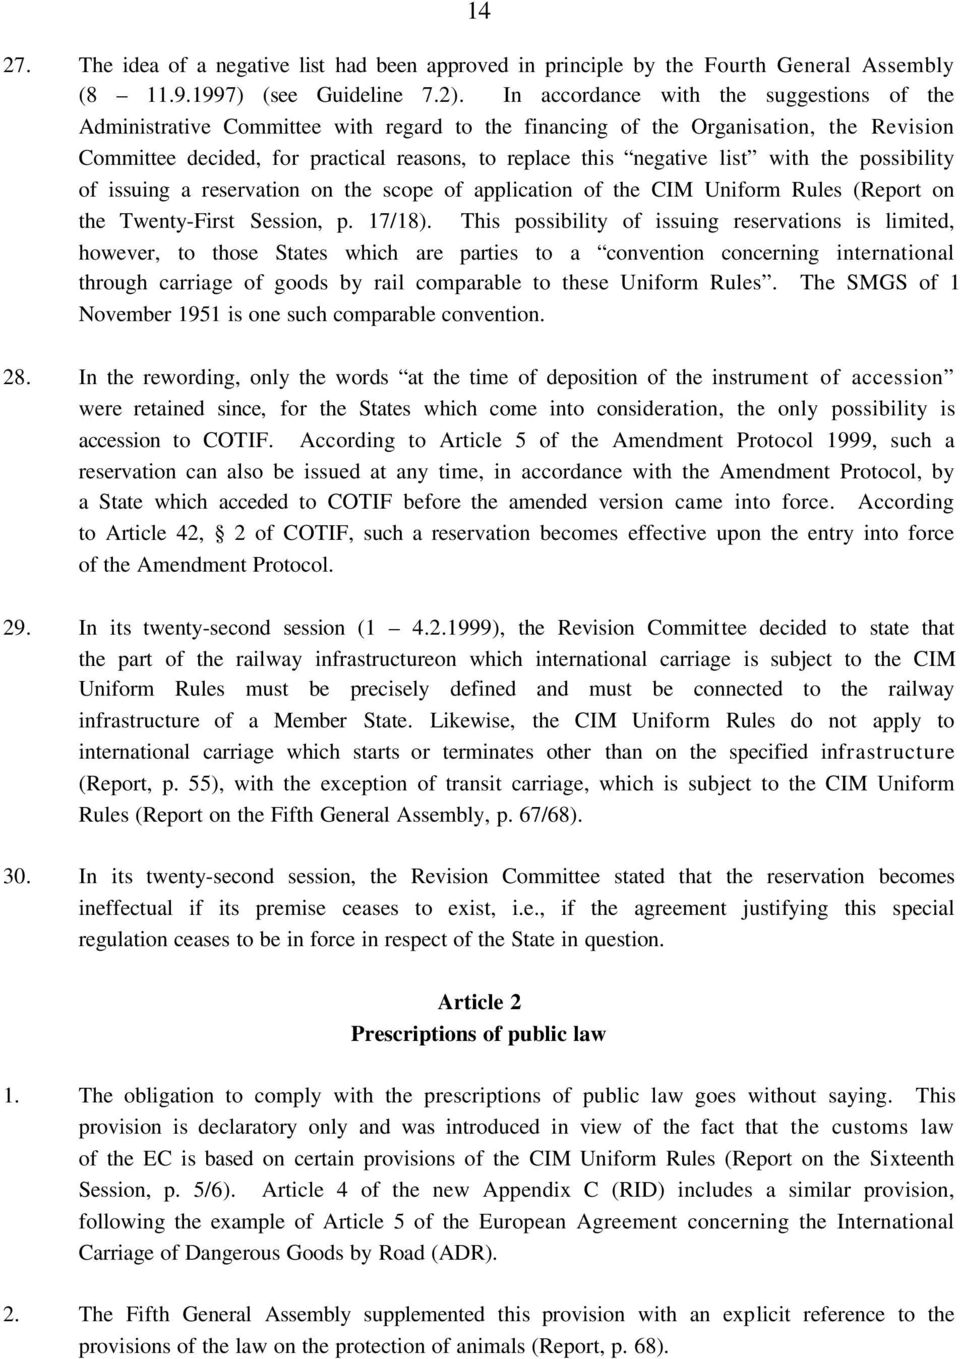 list with the possibility of issuing a reservation on the scope of application of the CIM Uniform Rules (Report on the Twenty-First Session, p. 17/18).